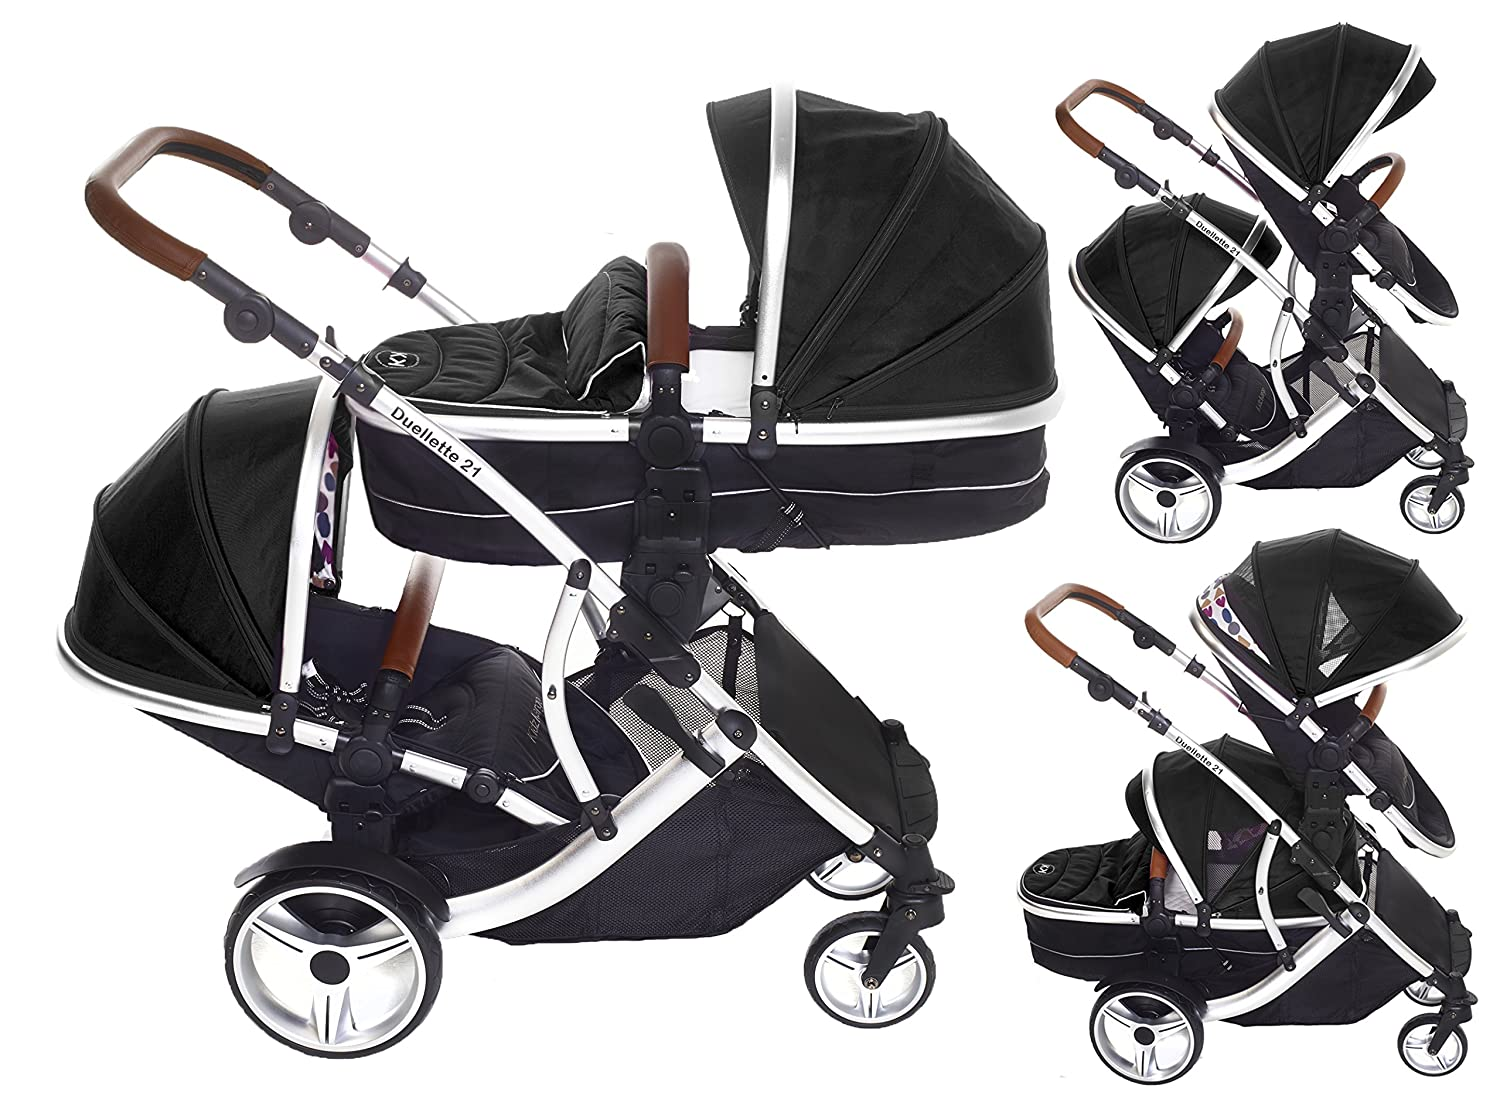 Kids Kargo Duellette 21 BS Combi Tandem Double Twin Pushchair